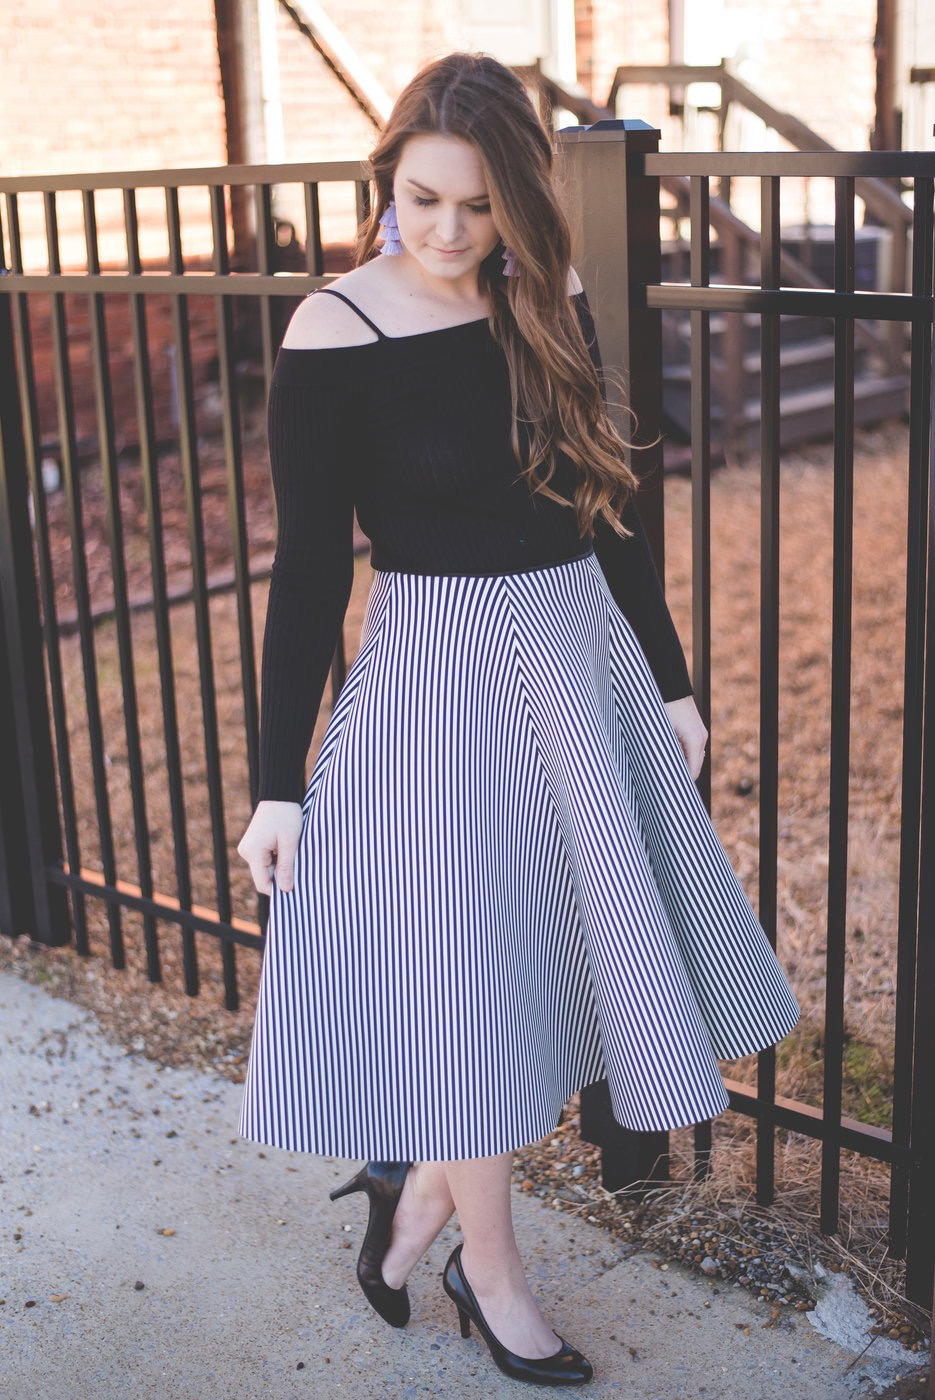 girl looking down in skirt and top with tassel earrings.